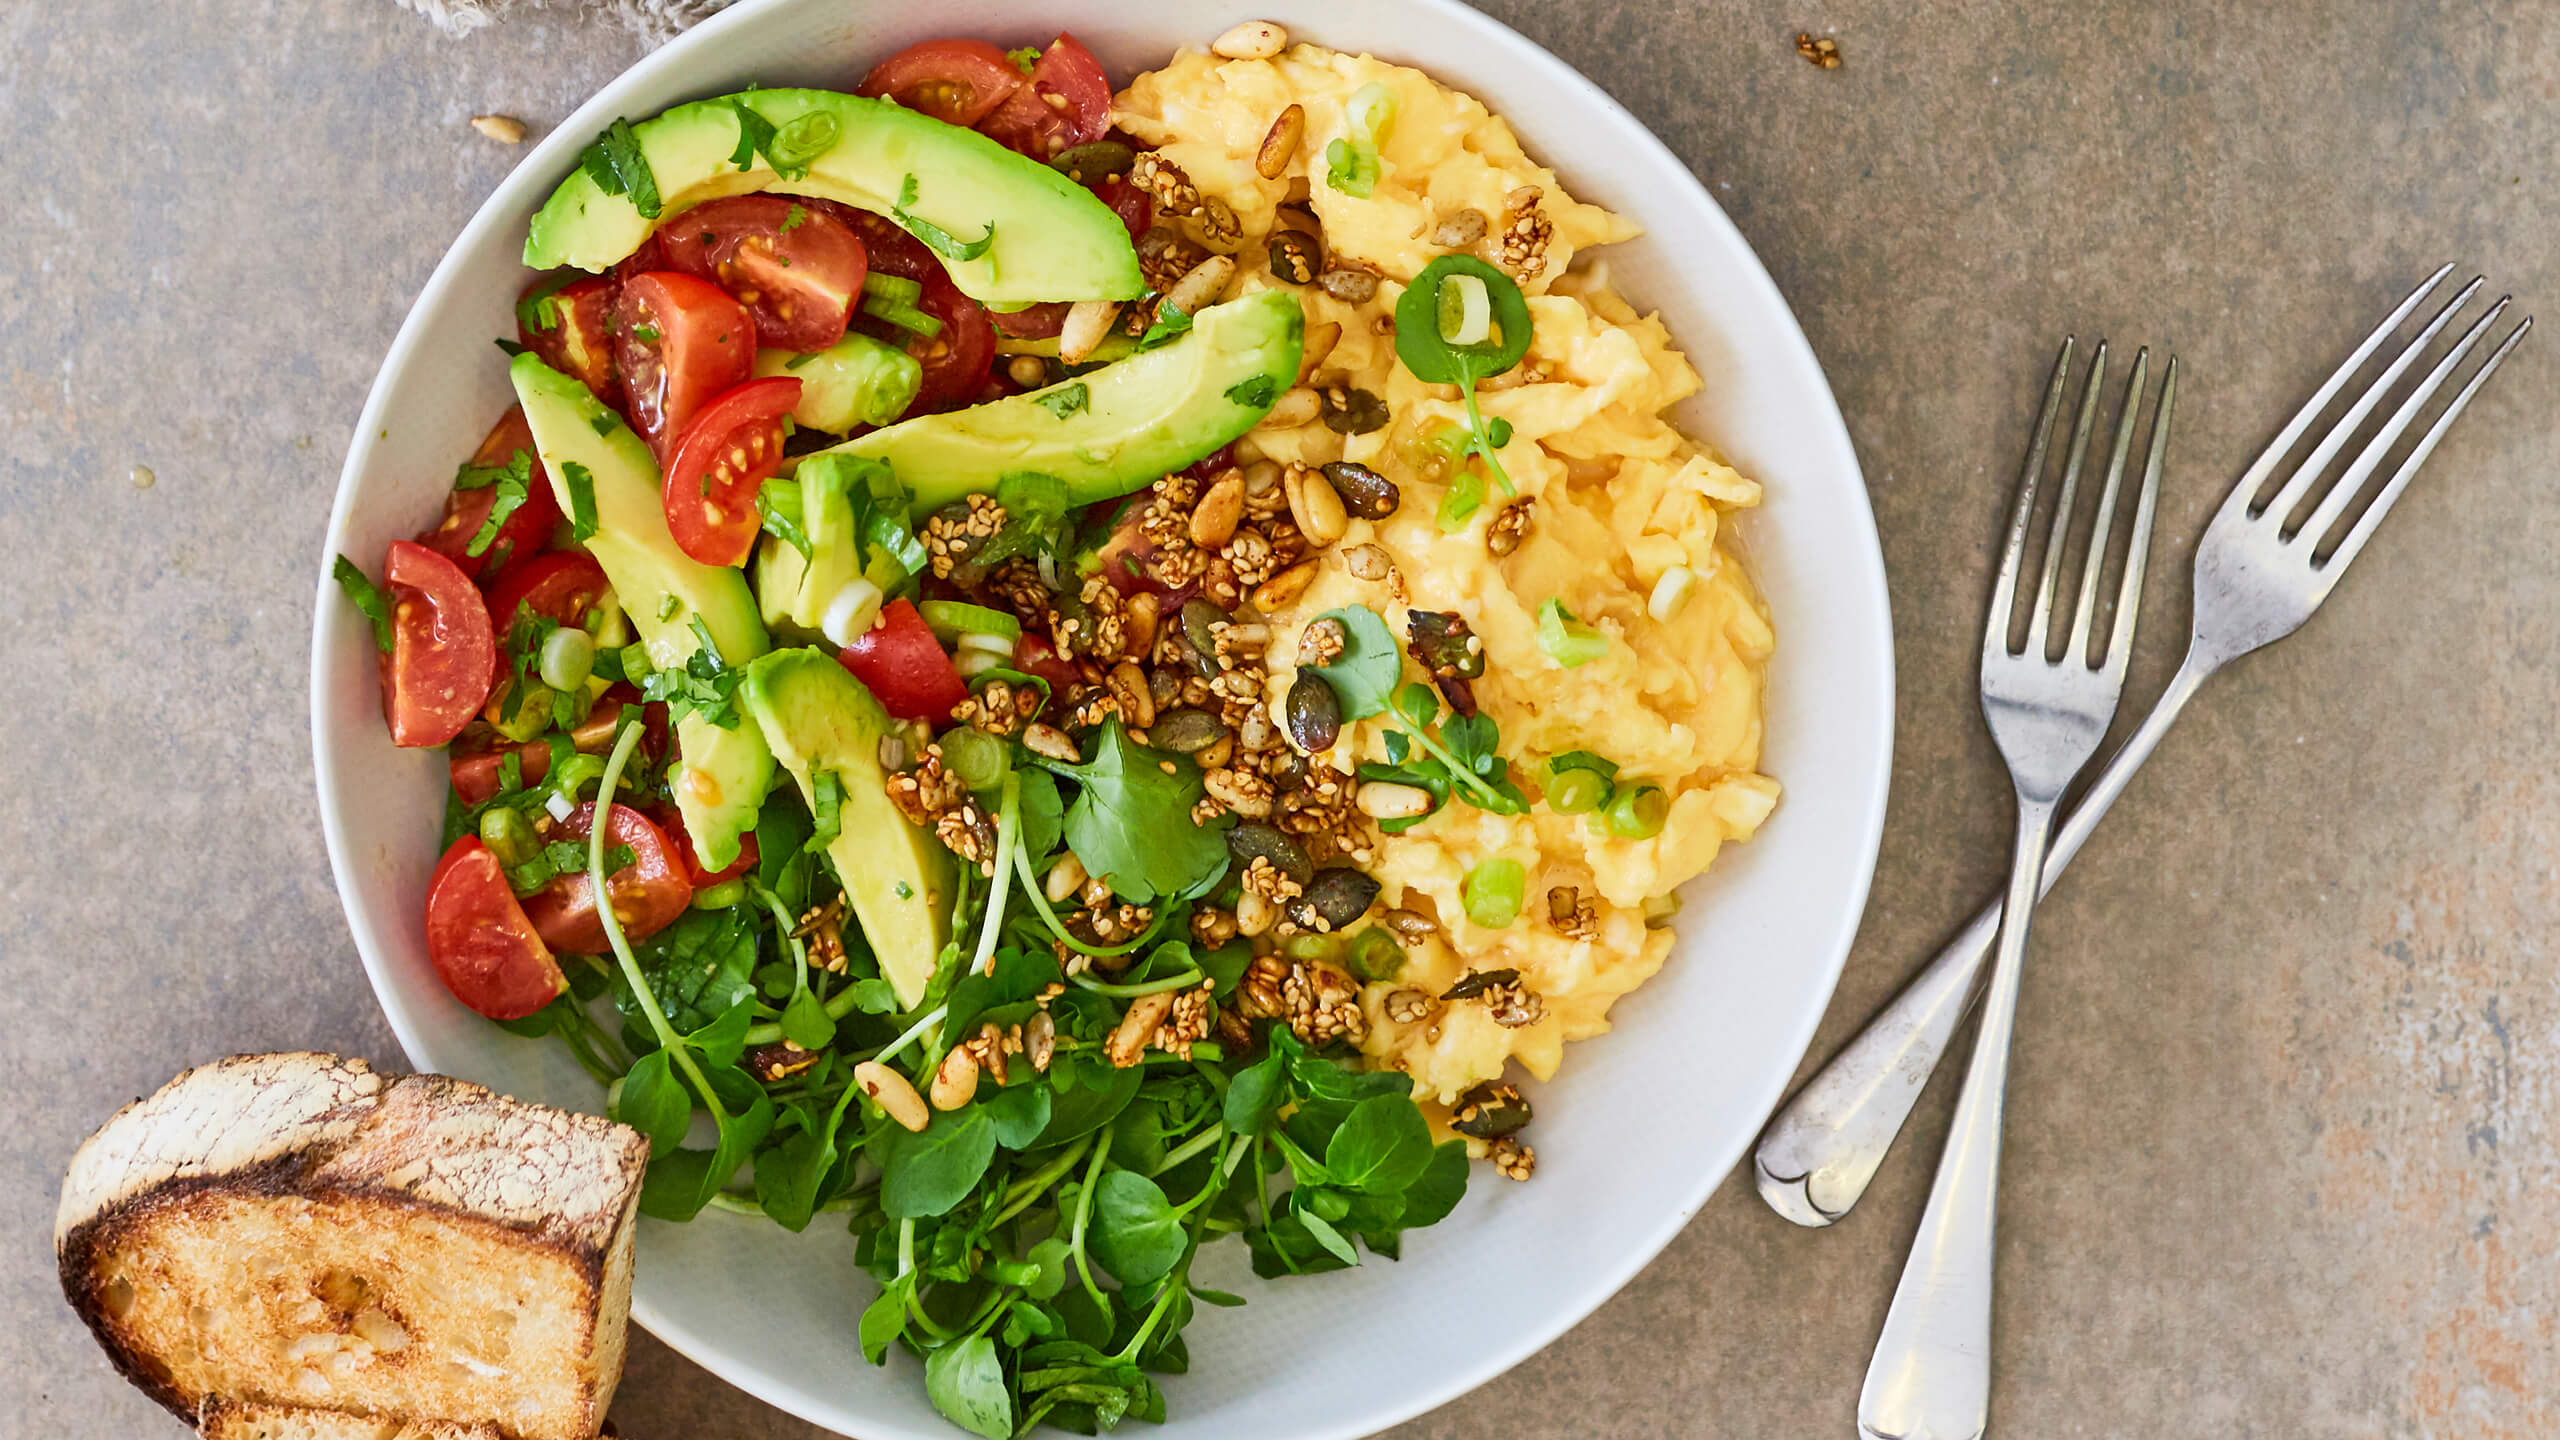 Avocado and Scrambled Egg Brunch Bowl with Sweet and Spicy Seeds